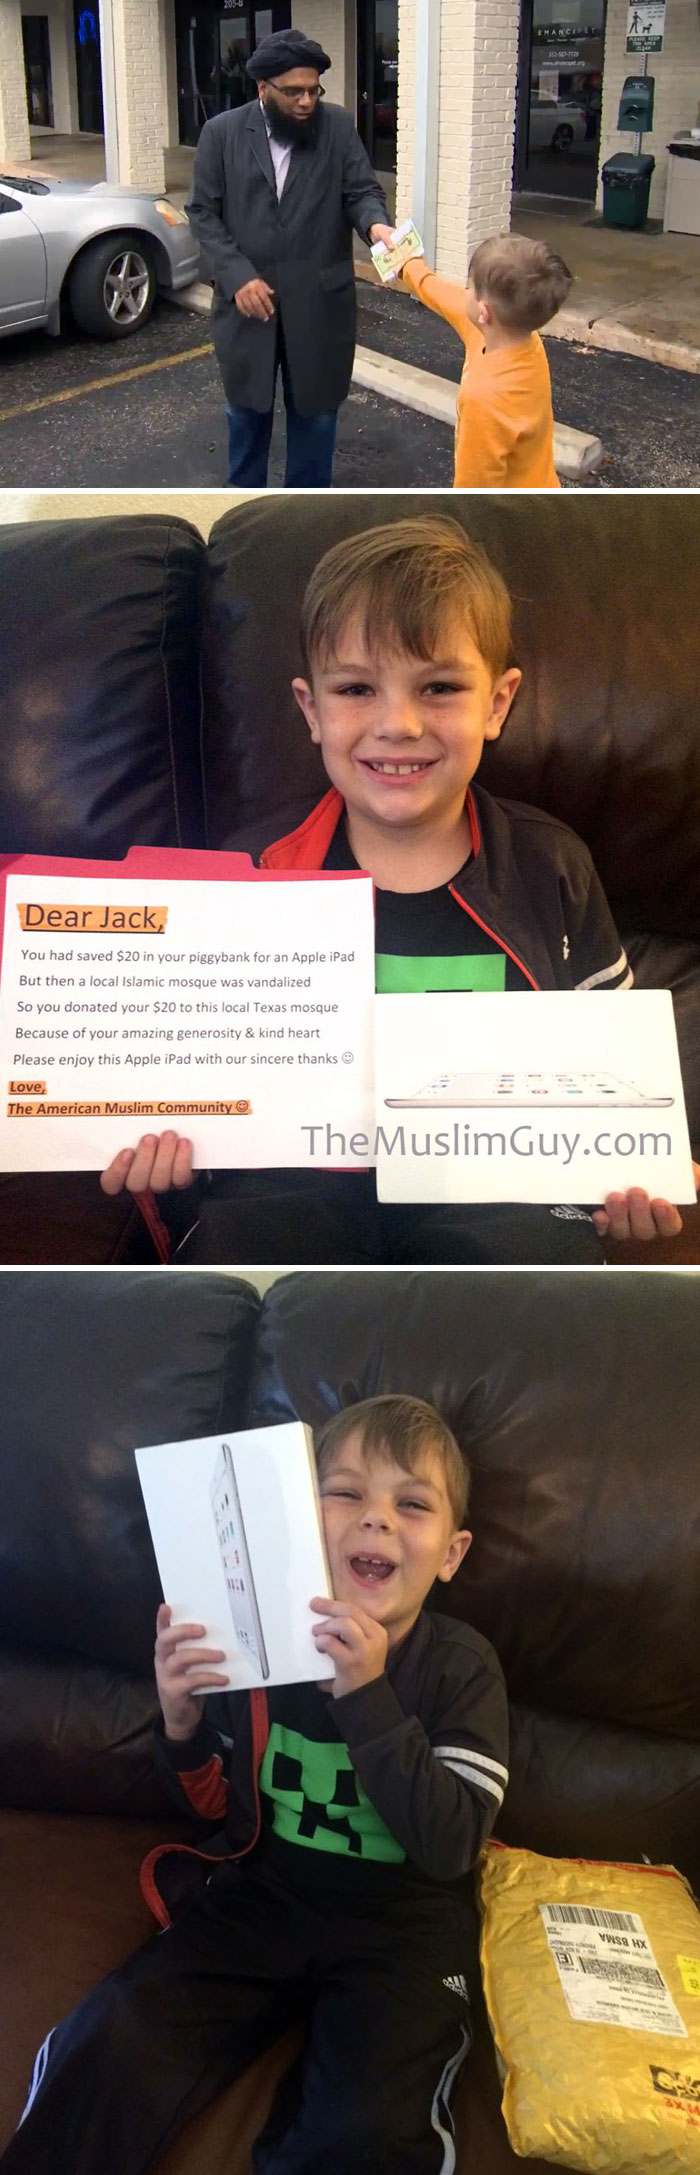 7-Year-Old Boy Donates $20 From Piggy Bank To Help Vandalized Mosque. Wanted Apple iPad. So He Got One